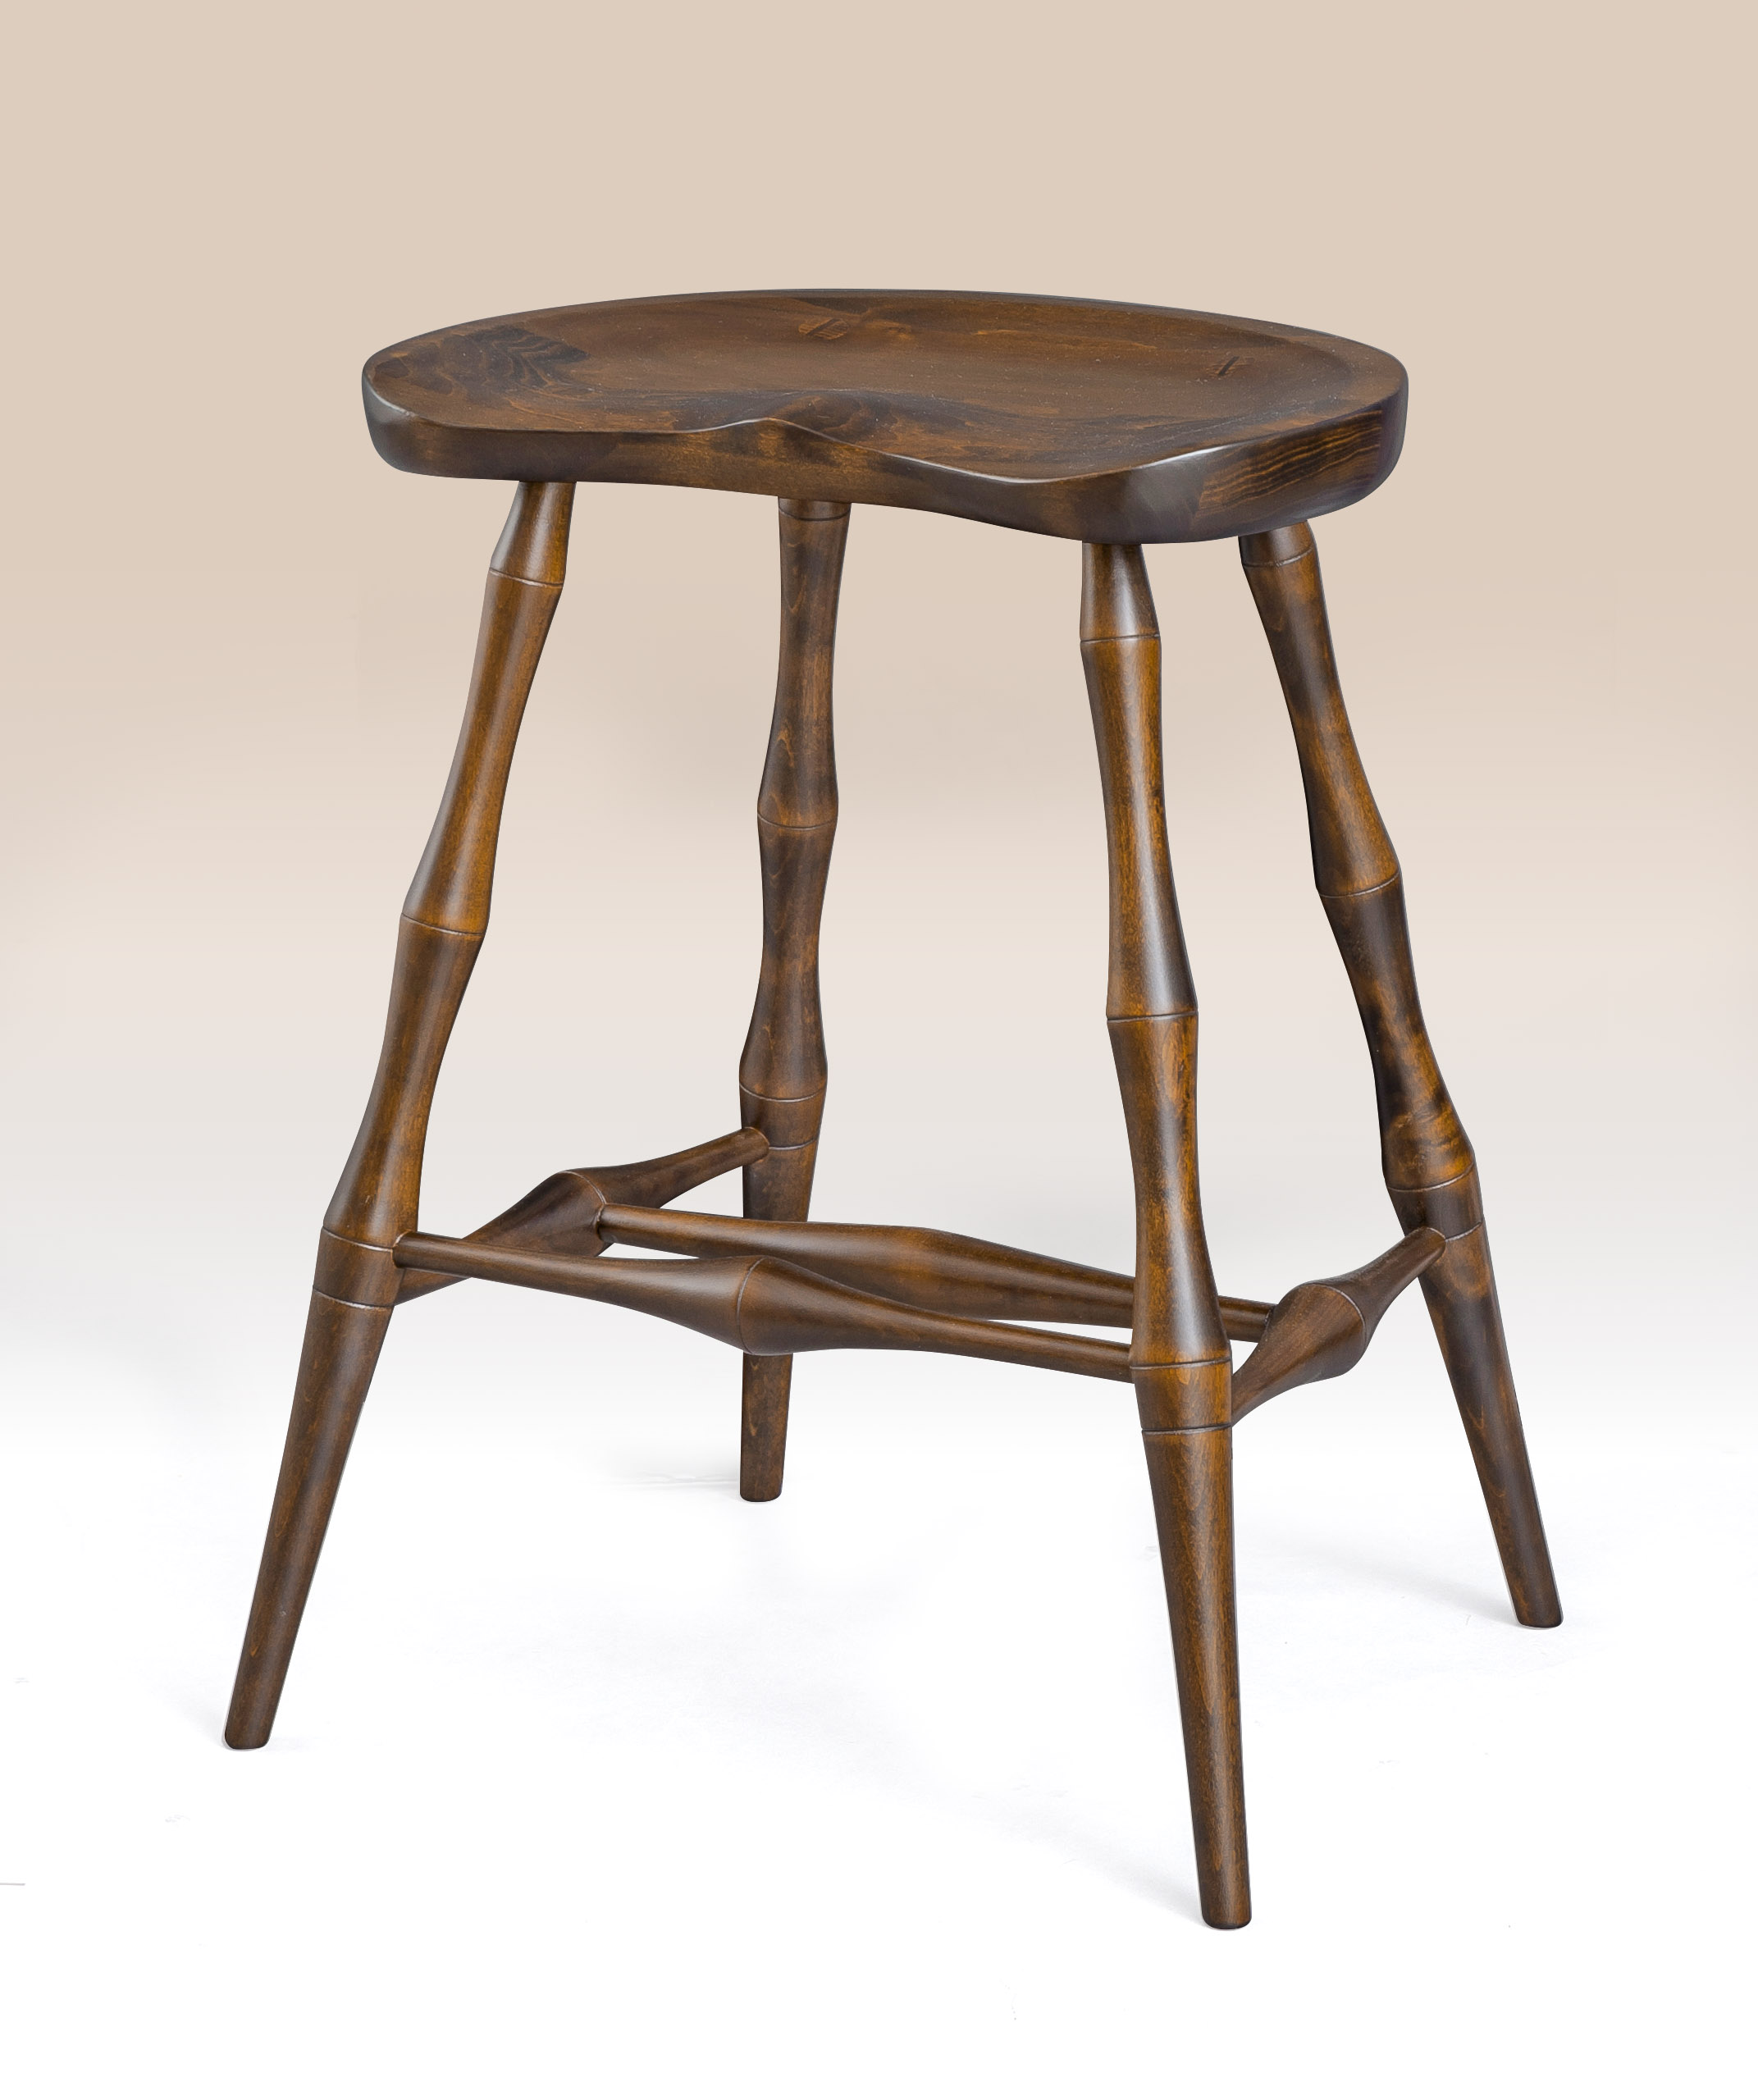 Historical Saddle Seat Stool with Bamboo Style Turnings Image